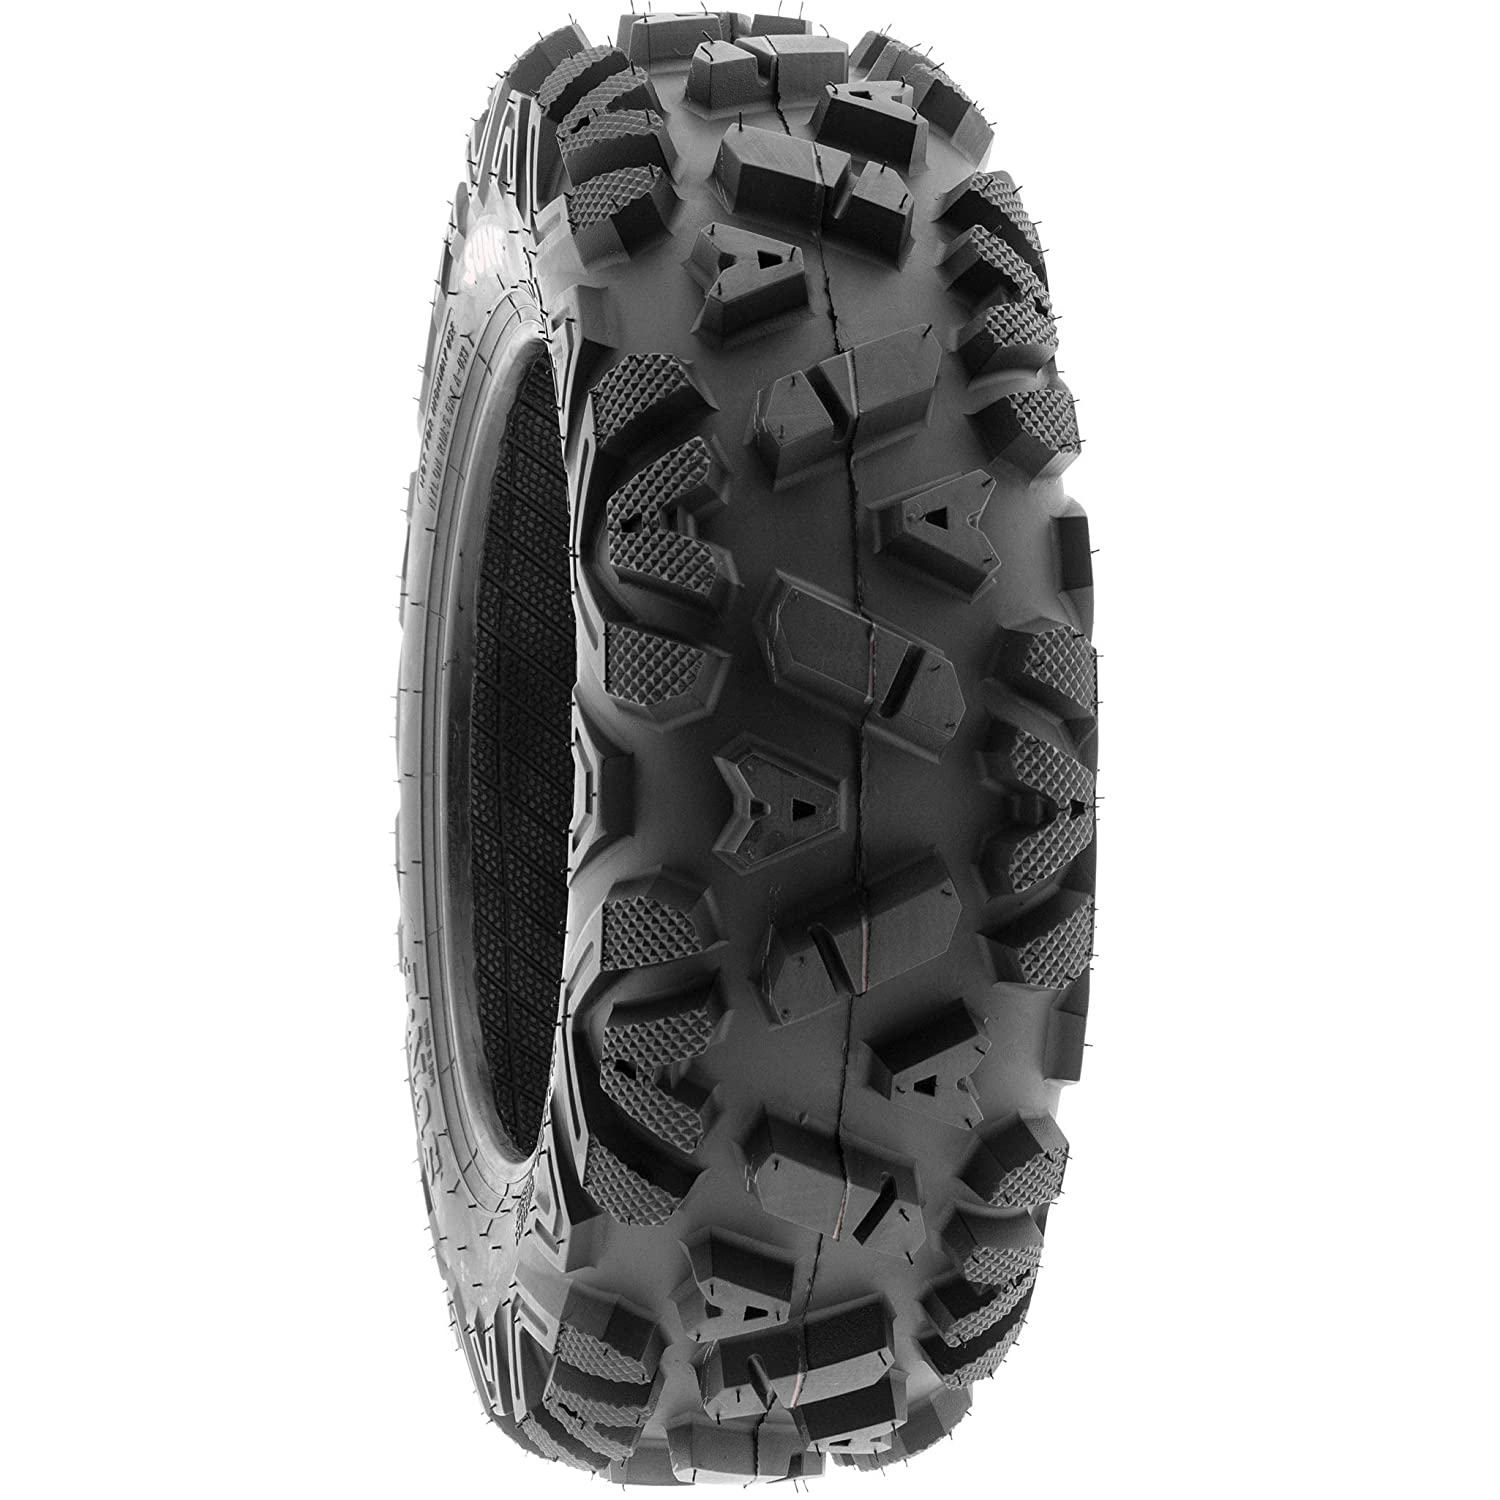 SunF 25x8-11 25x8x11 ATV UTV A//T Replacement Race 6 PR Tubeless Tires A033 POWER I, Set of 2